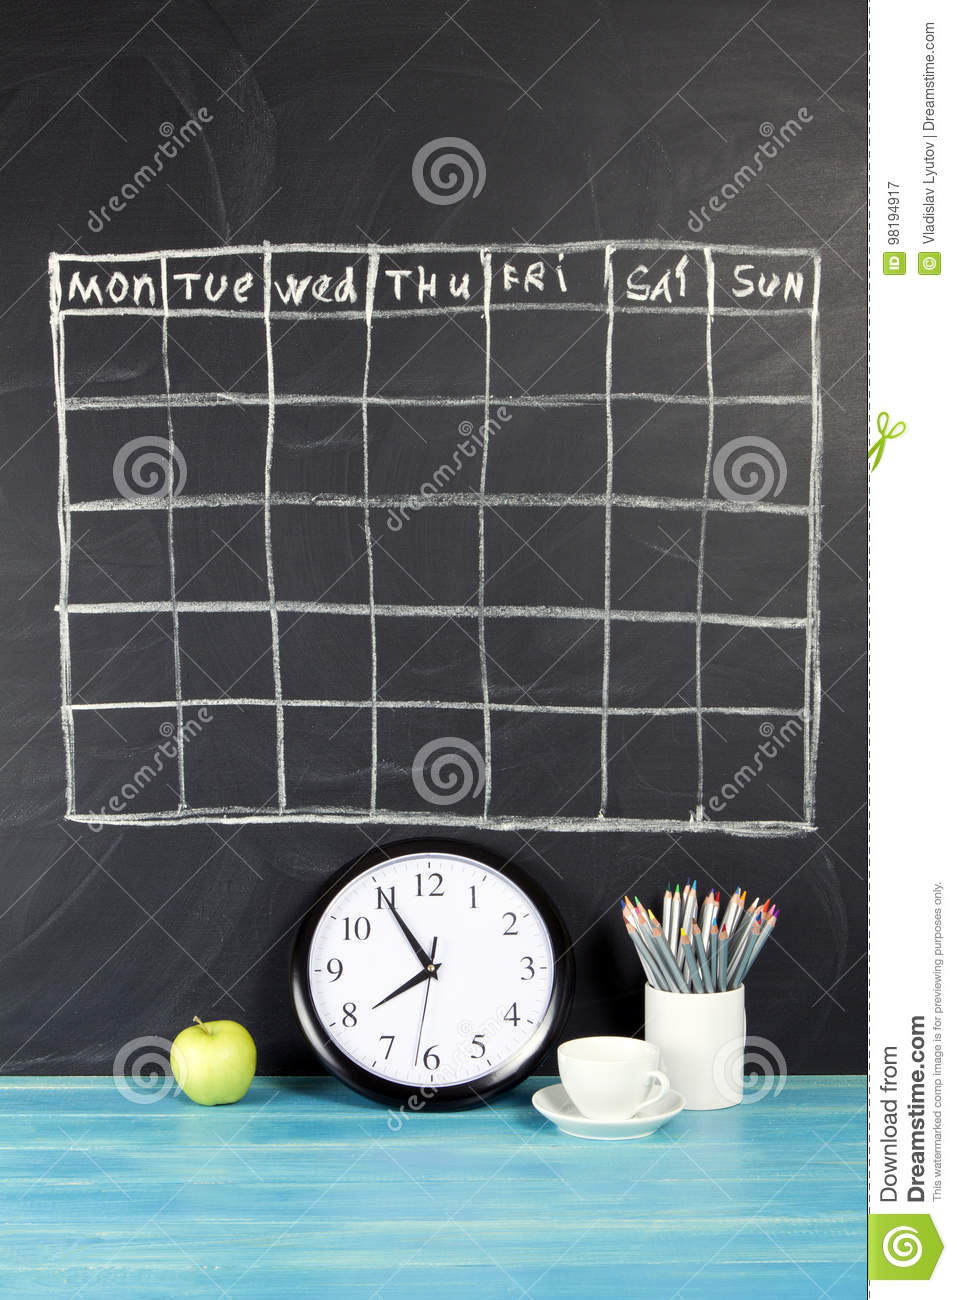 grid timetable schedule on black chalkboard background  stock image